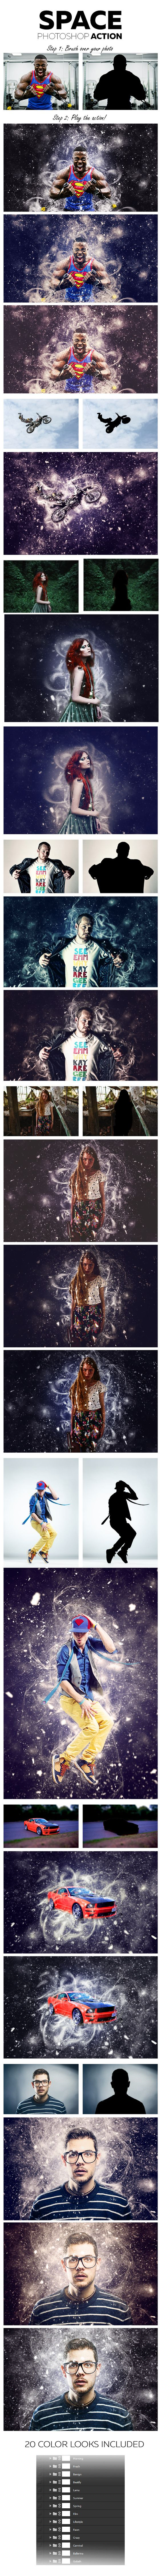 Space Photoshop Action #photoeffect Download: http://graphicriver.net/item/space-photoshop-action/12165749?ref=ksioks